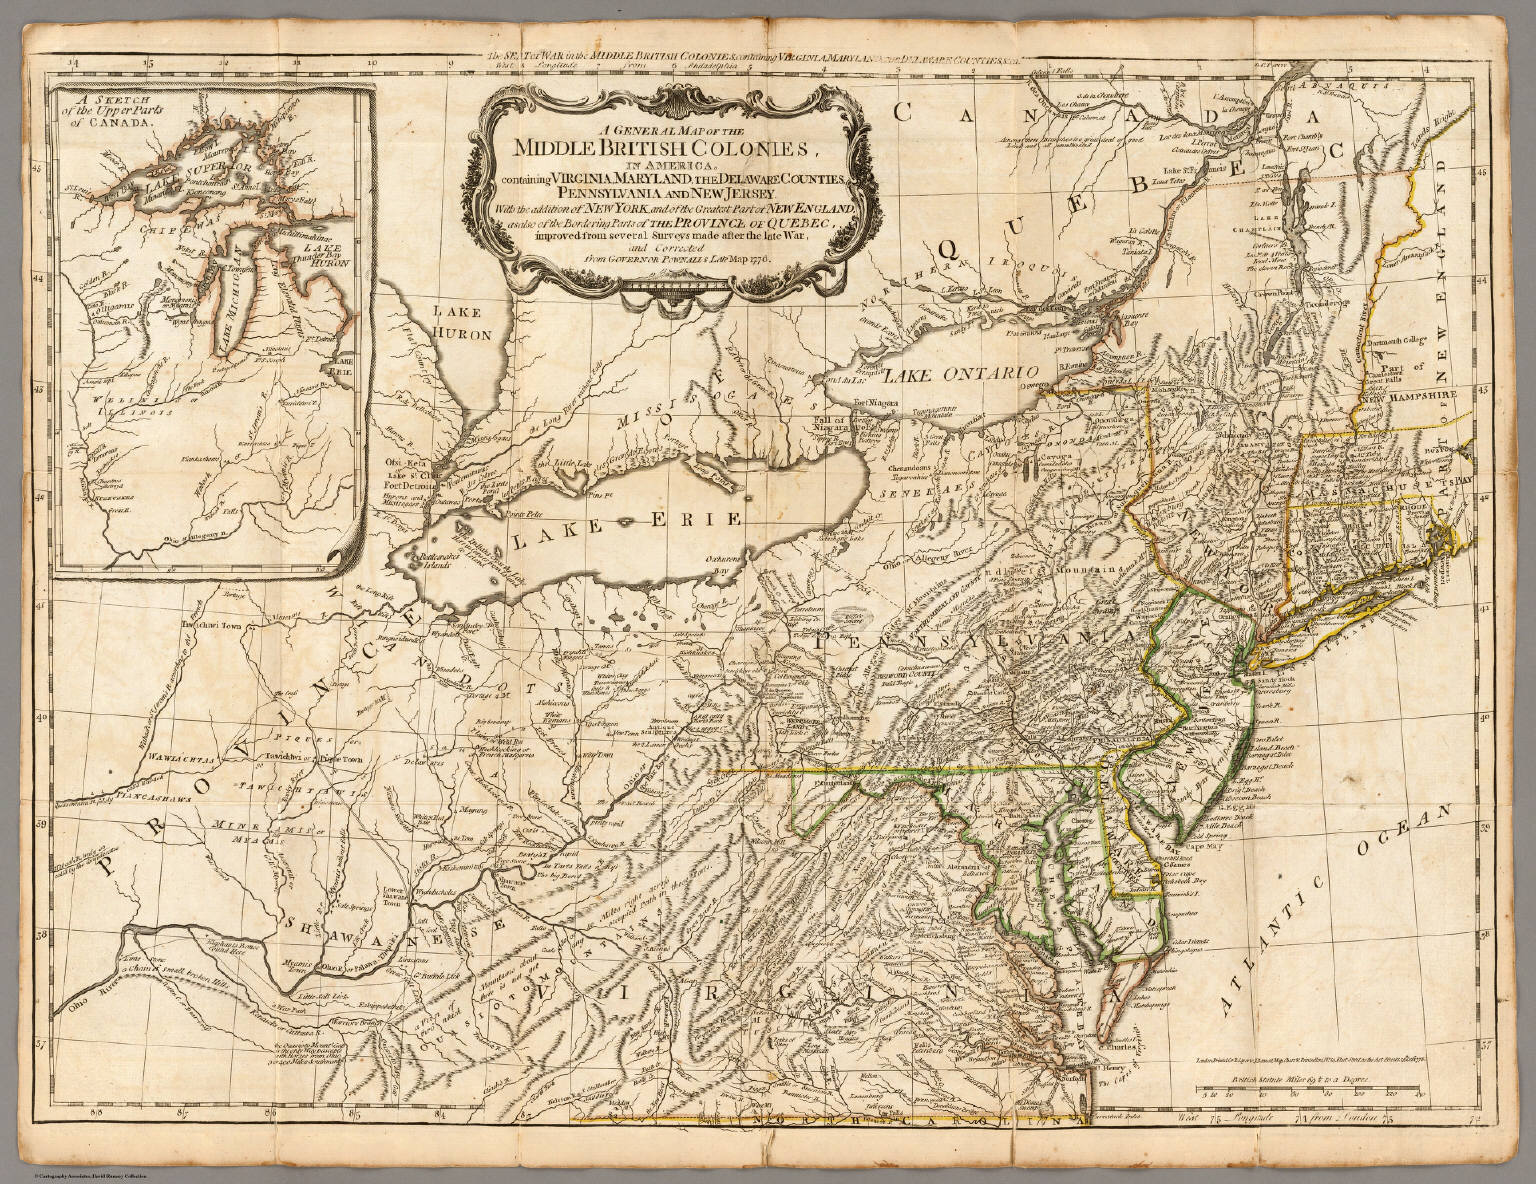 A General Map Of The Middle British Colonies In America Robert